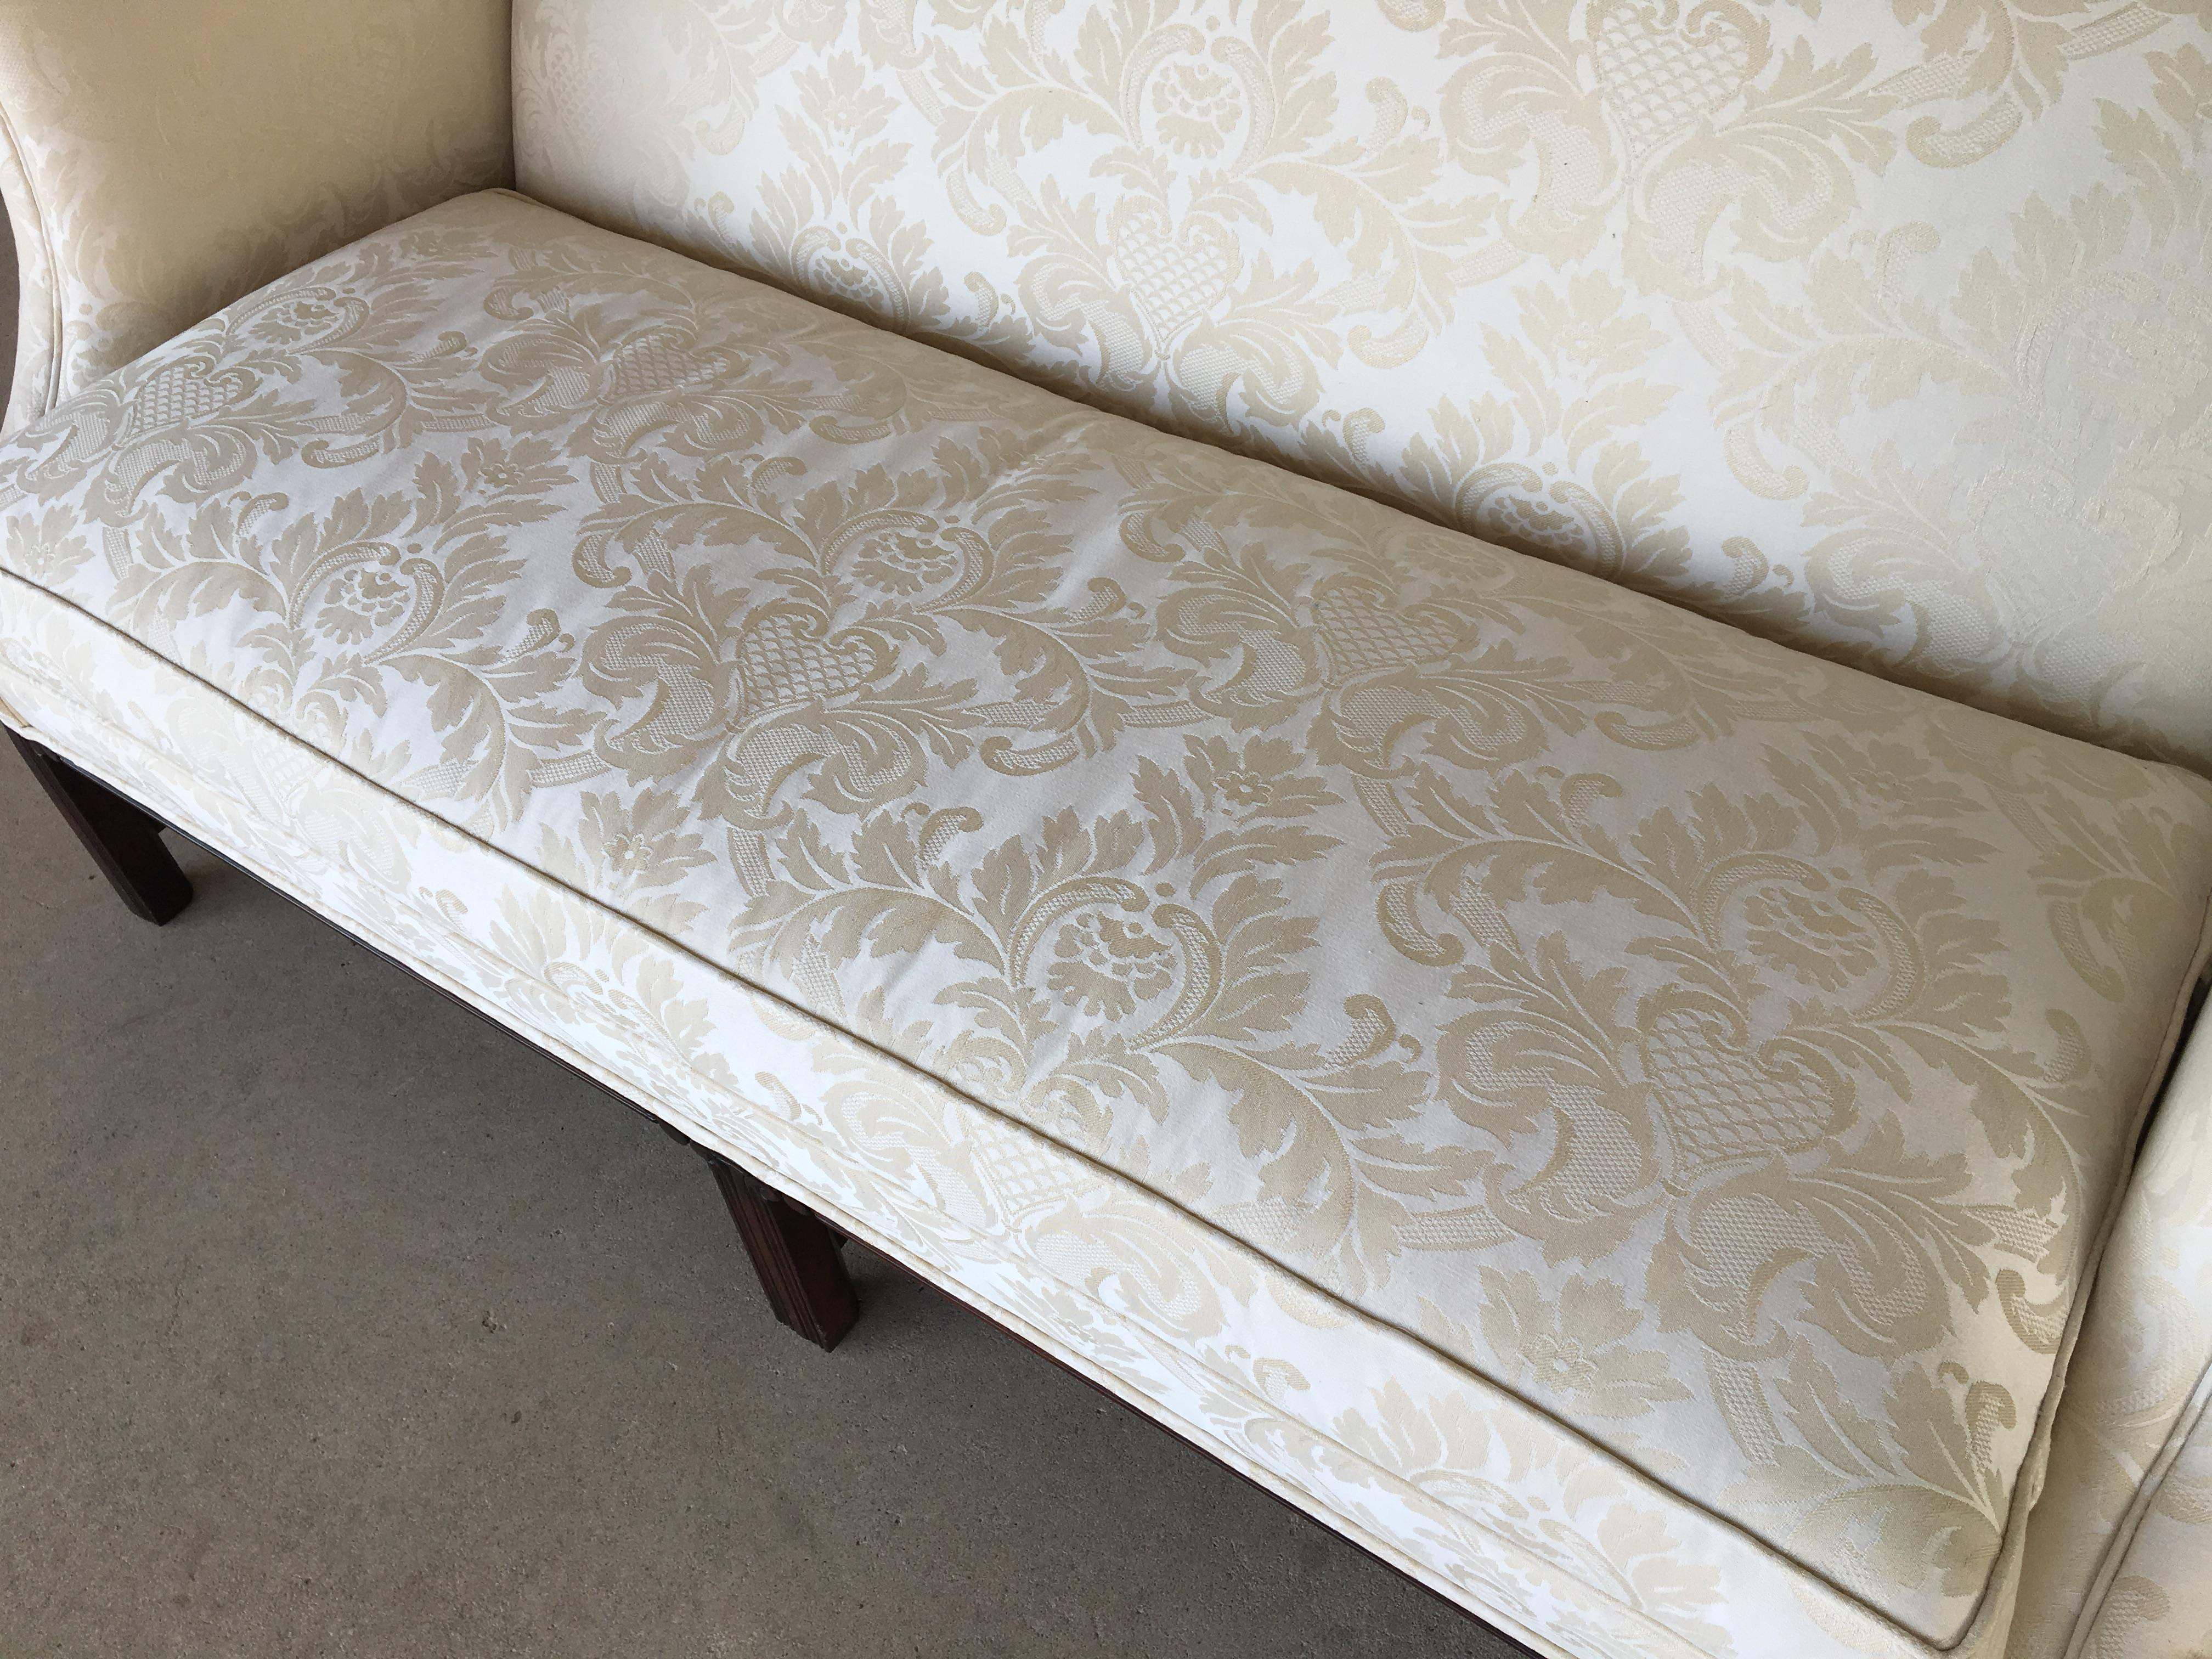 Hickory Chair Chippendale Style Formal Camel Back Sofa   Image 5 Of 12